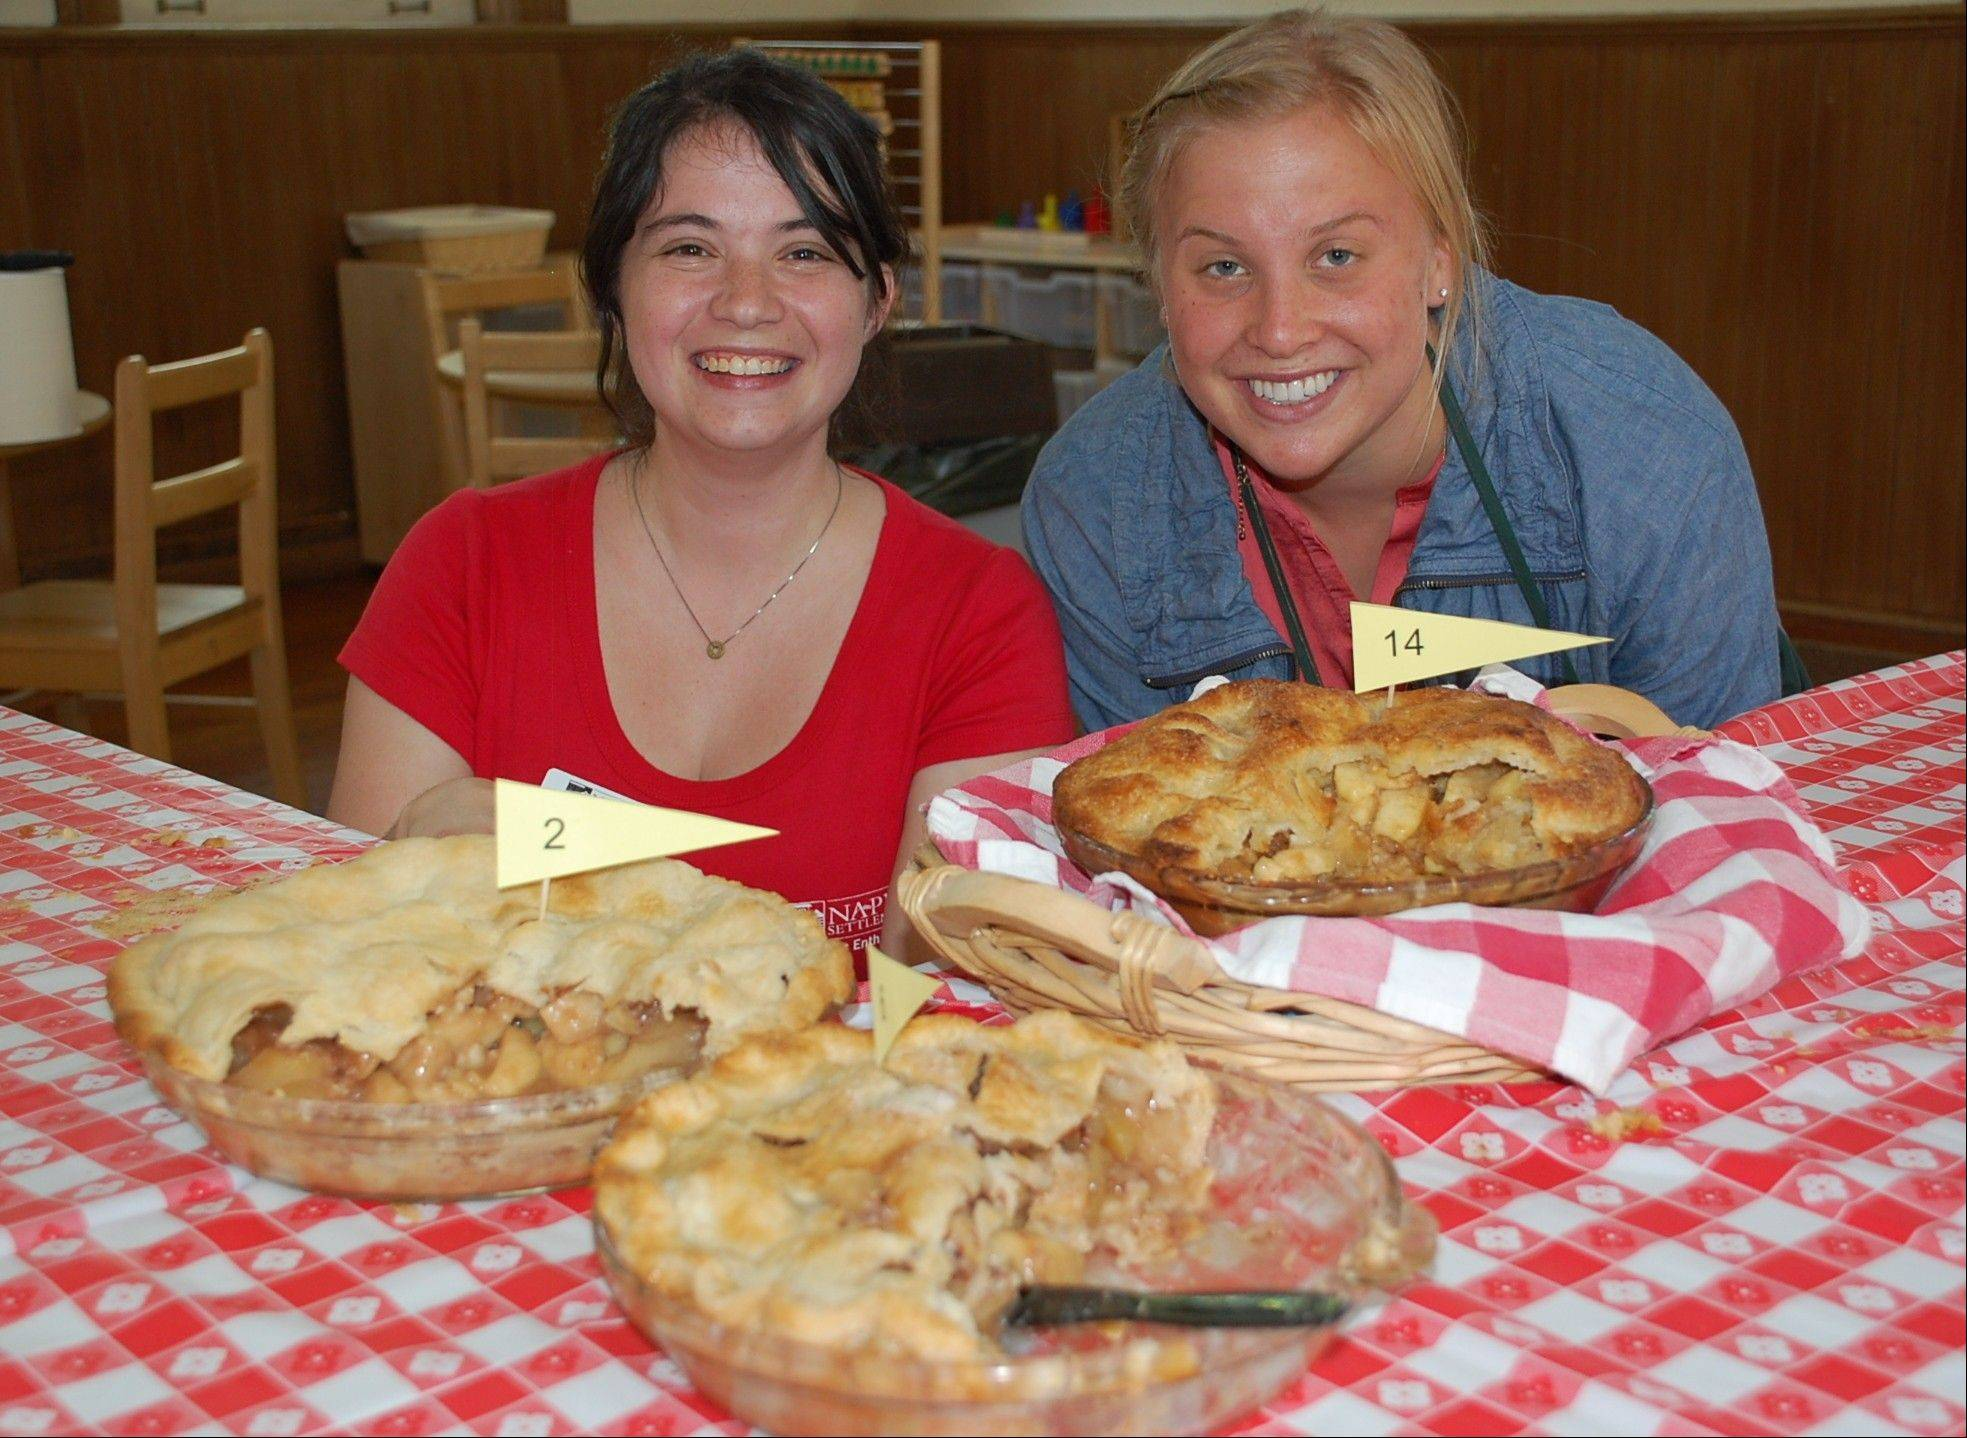 Naper Settlement Learning Experiences coordinator Jenn Edginton and volunteer Amy Ramsland organized the 2012 apple pie baking contest at Naper Settlement.